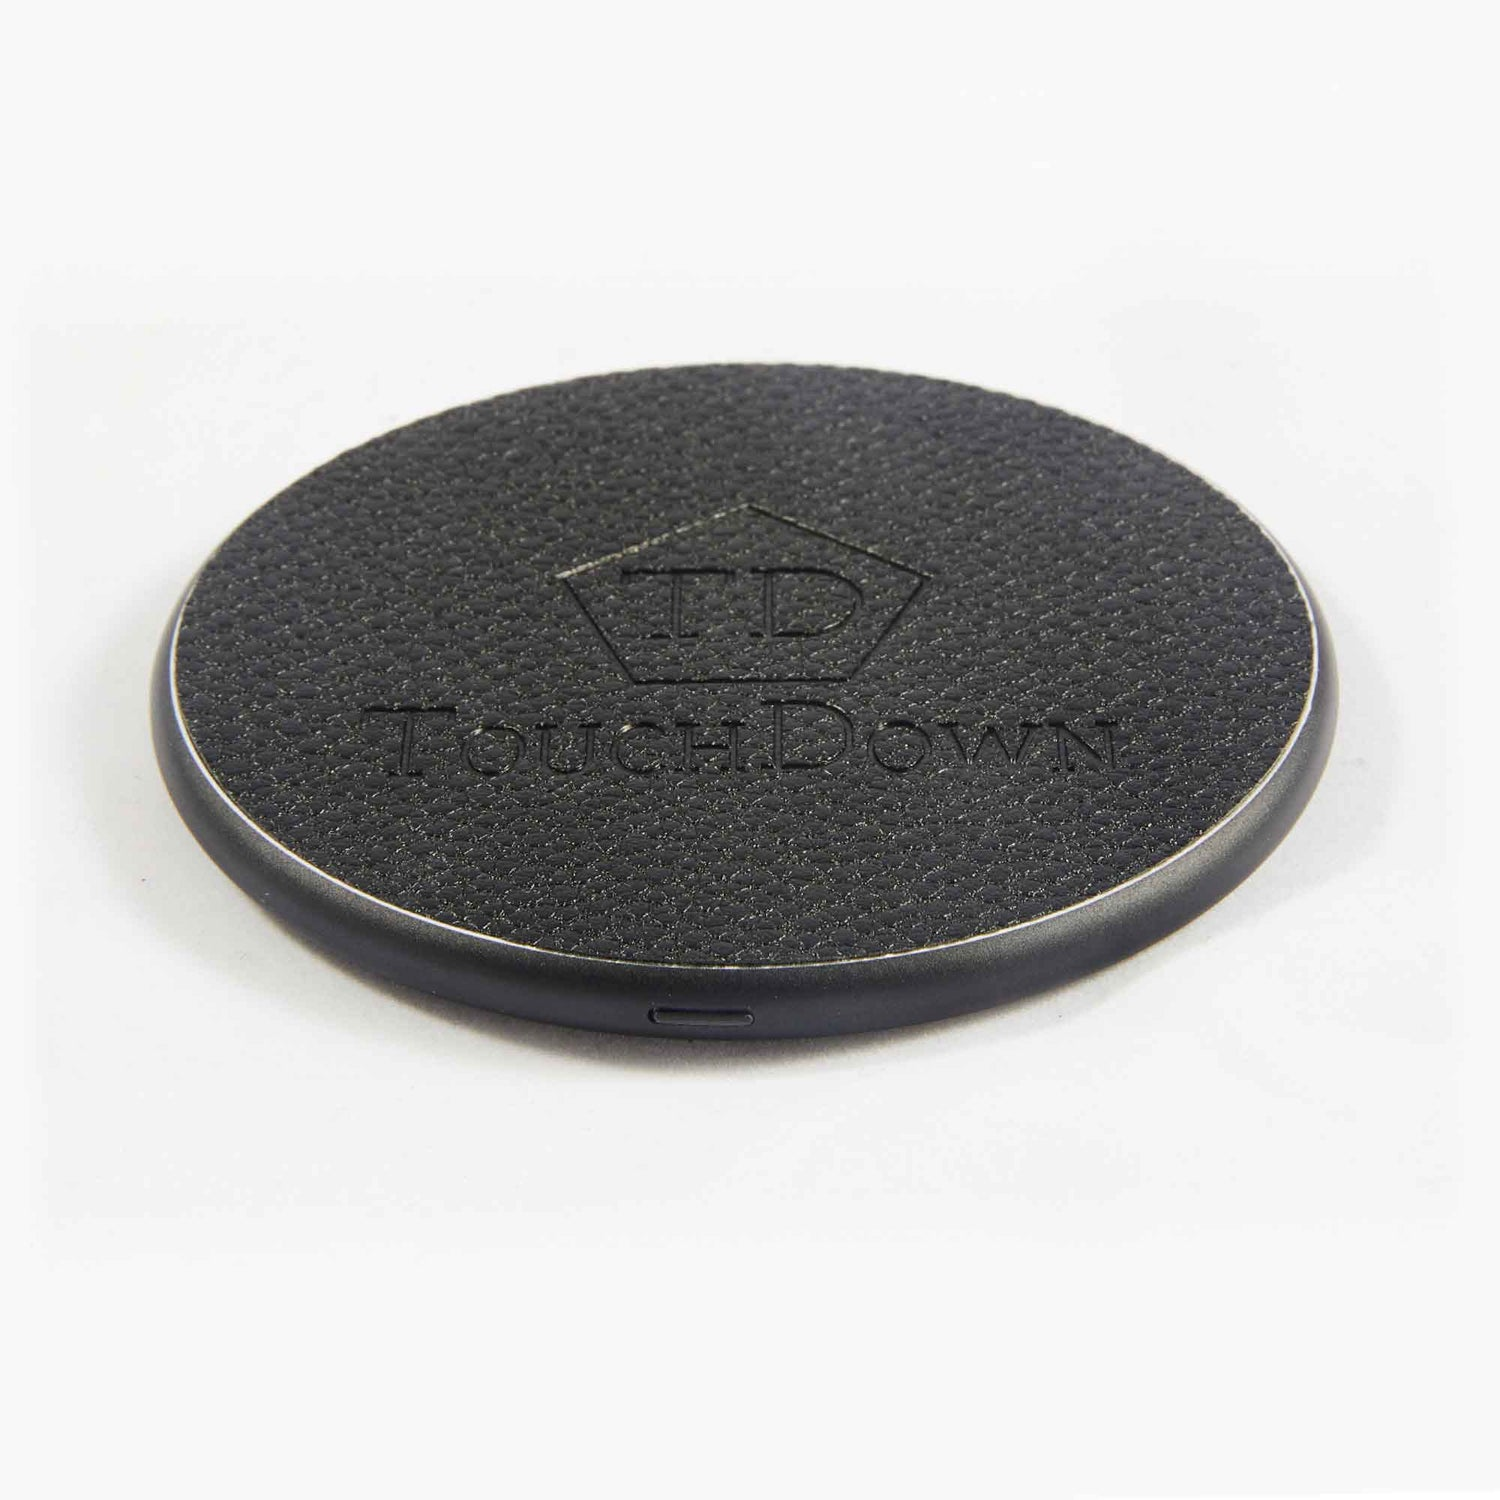 TOUCHDOWN CHARGING Black Round Smartphone Wireless Charging Pad